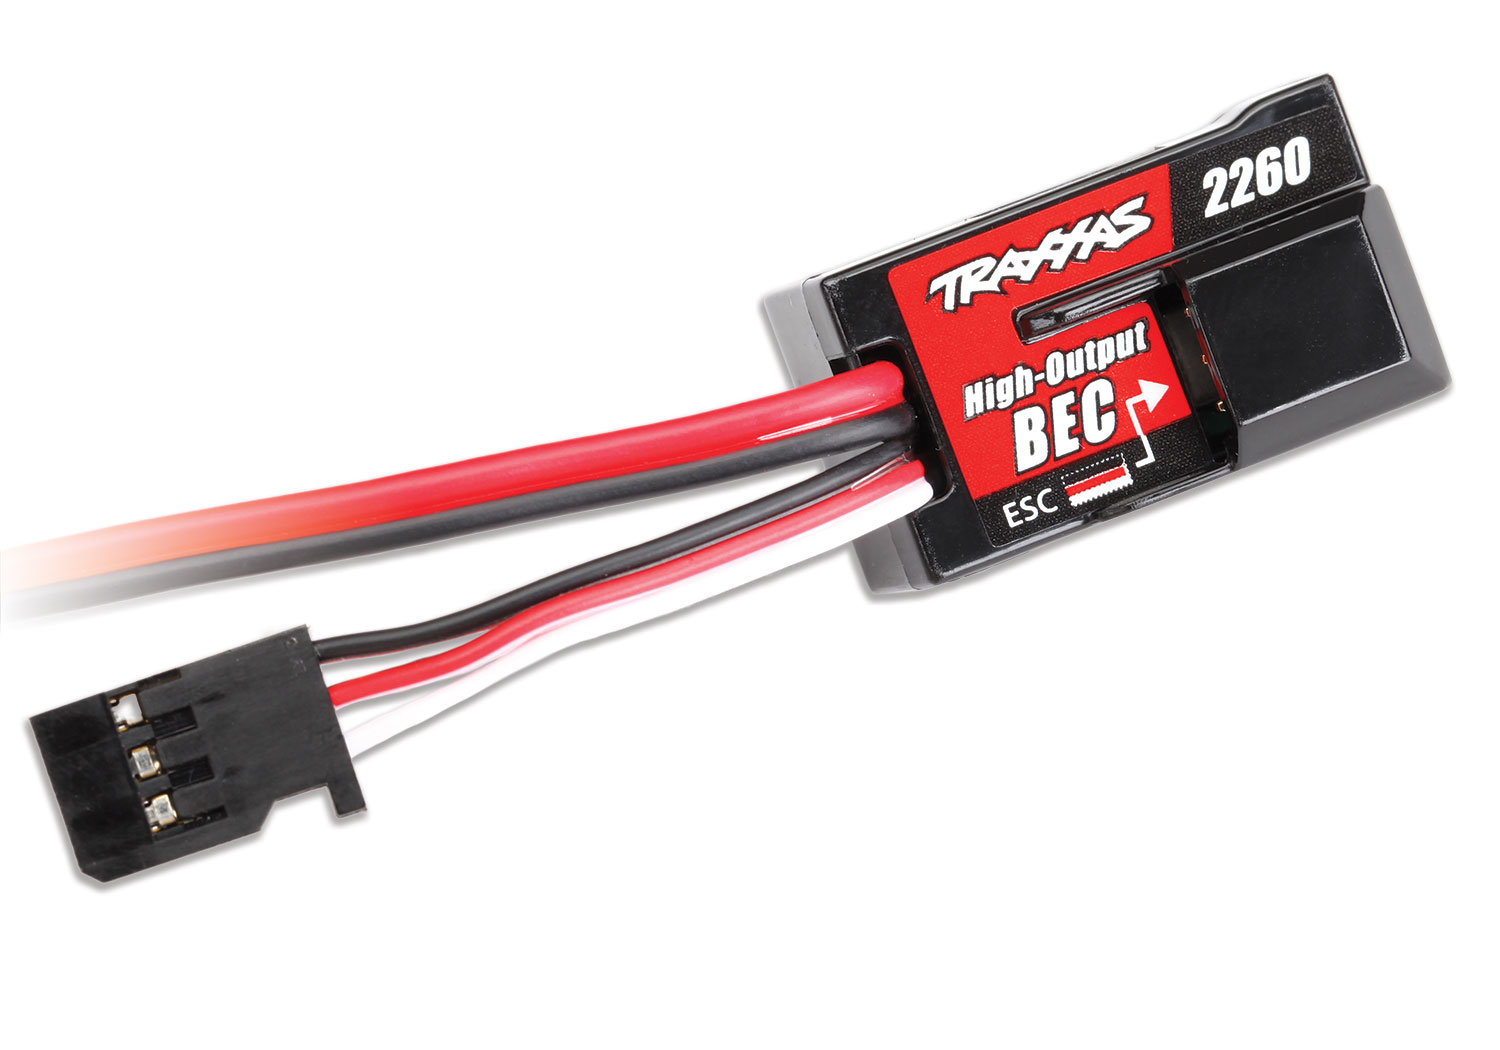 hight resolution of high voltage bec boosts receiver power for even the most demanding servos